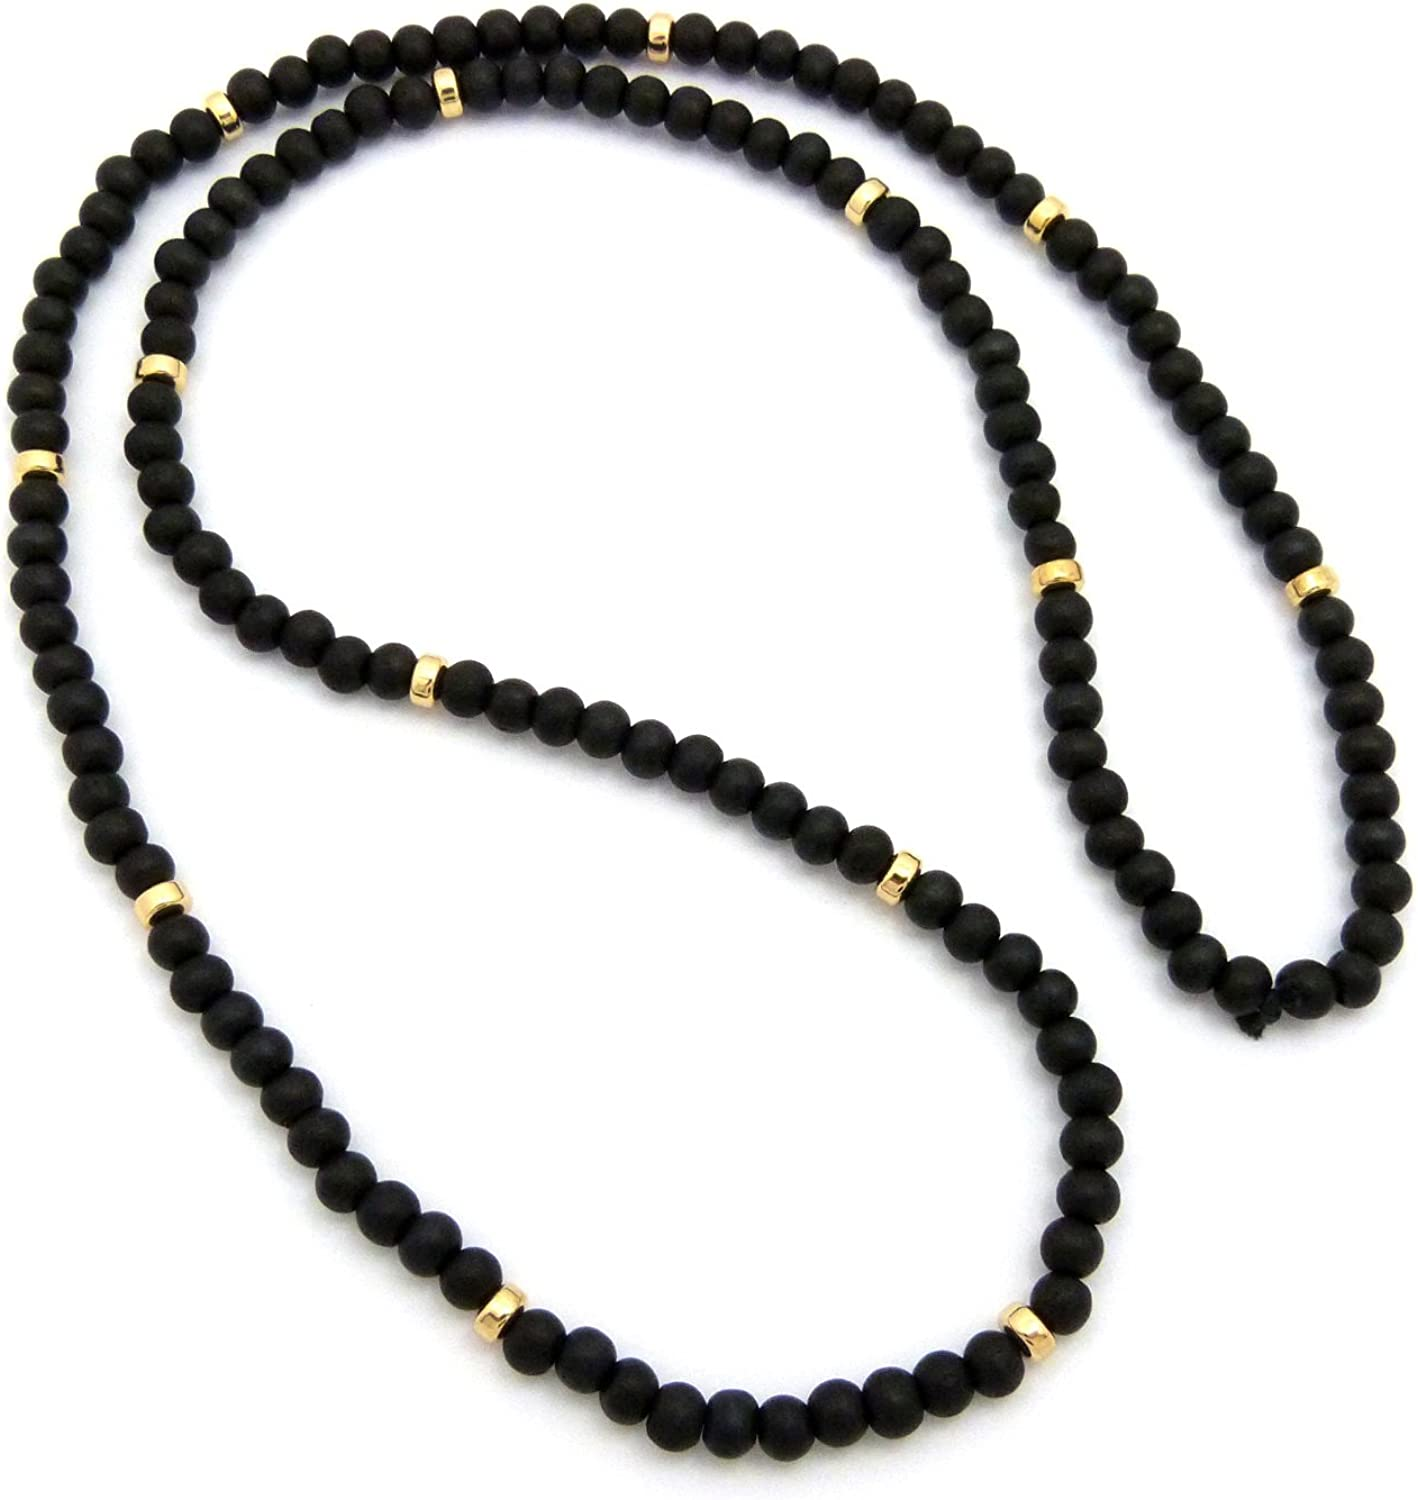 "Fashion 21 Jet Black, Brown Tone 6mm 30"" Wooden Bead Metal Connect Ball Bead Necklace"